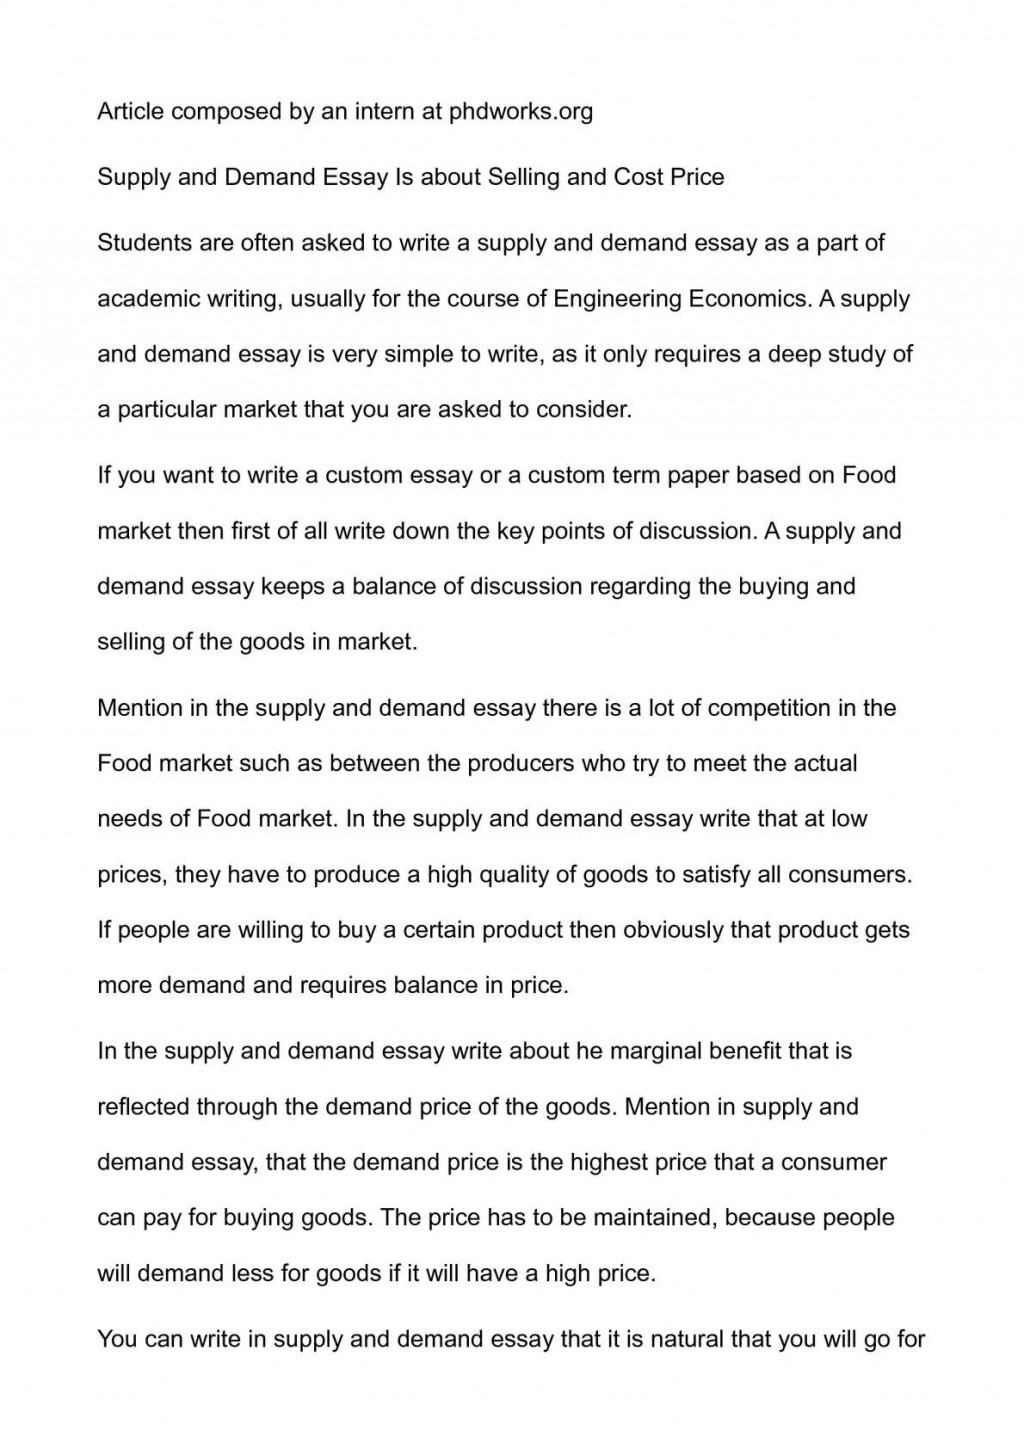 001 Essay Supply P1 Shocking Questions On Chain Management For And Demand Essaysupply Sign Up Large